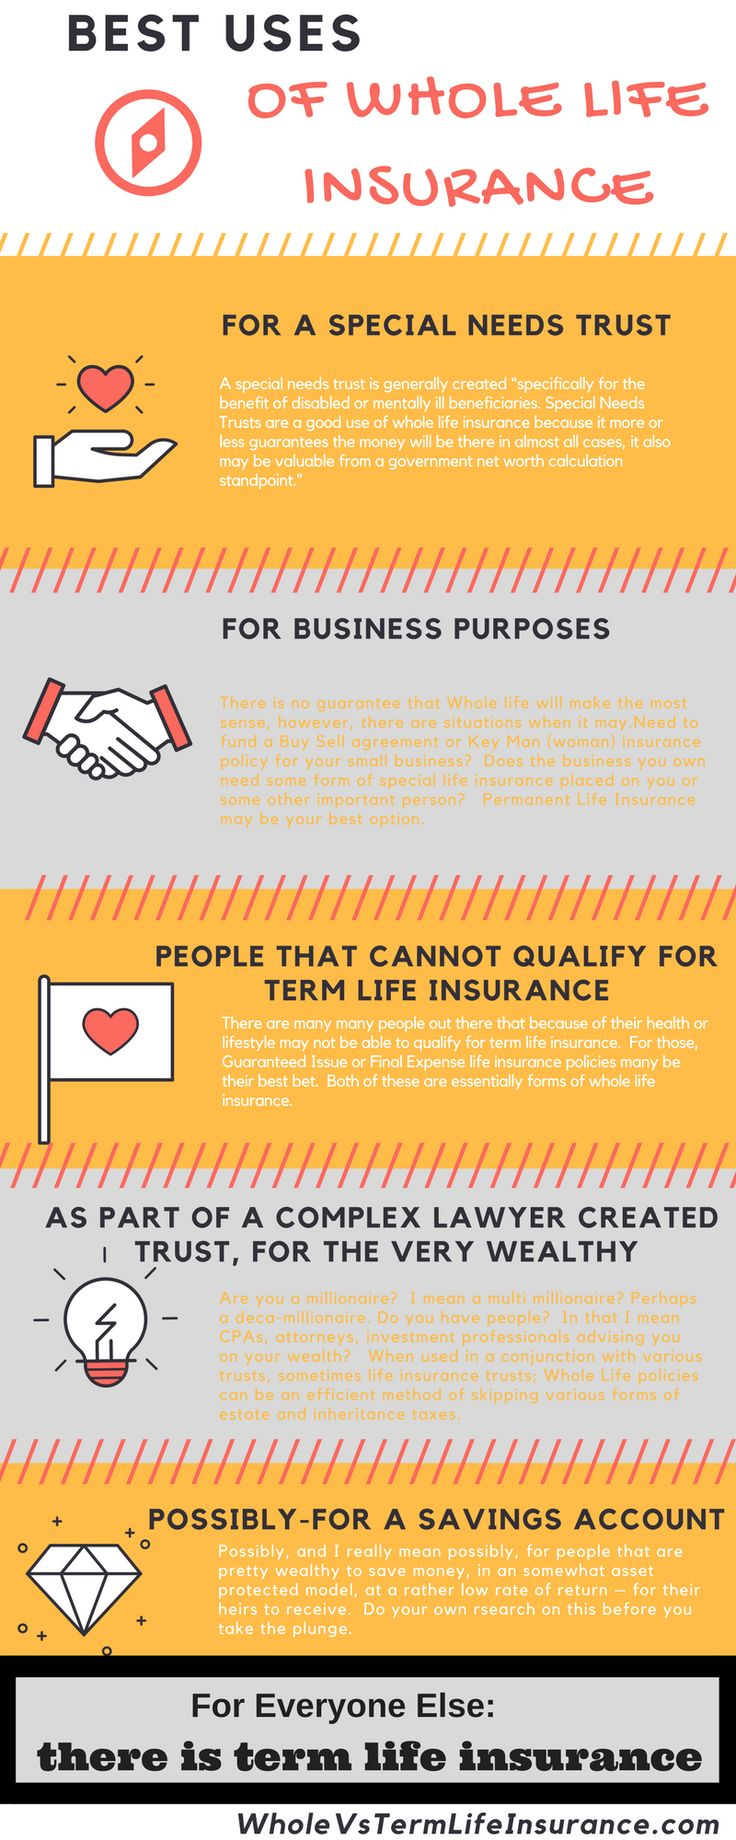 The five best ways uses / best reasons to buy Whole Life Insurance.  For everyone else, Term Life Insurance may be your best bet.  As with all insurance information on the internet, kindly talk to a licensed agent and with whole life you may also want to speak with your lawyer and or CPA.  Whole life insurance is complicated business, don't buy a cash value policy just because you are pushed to do so.